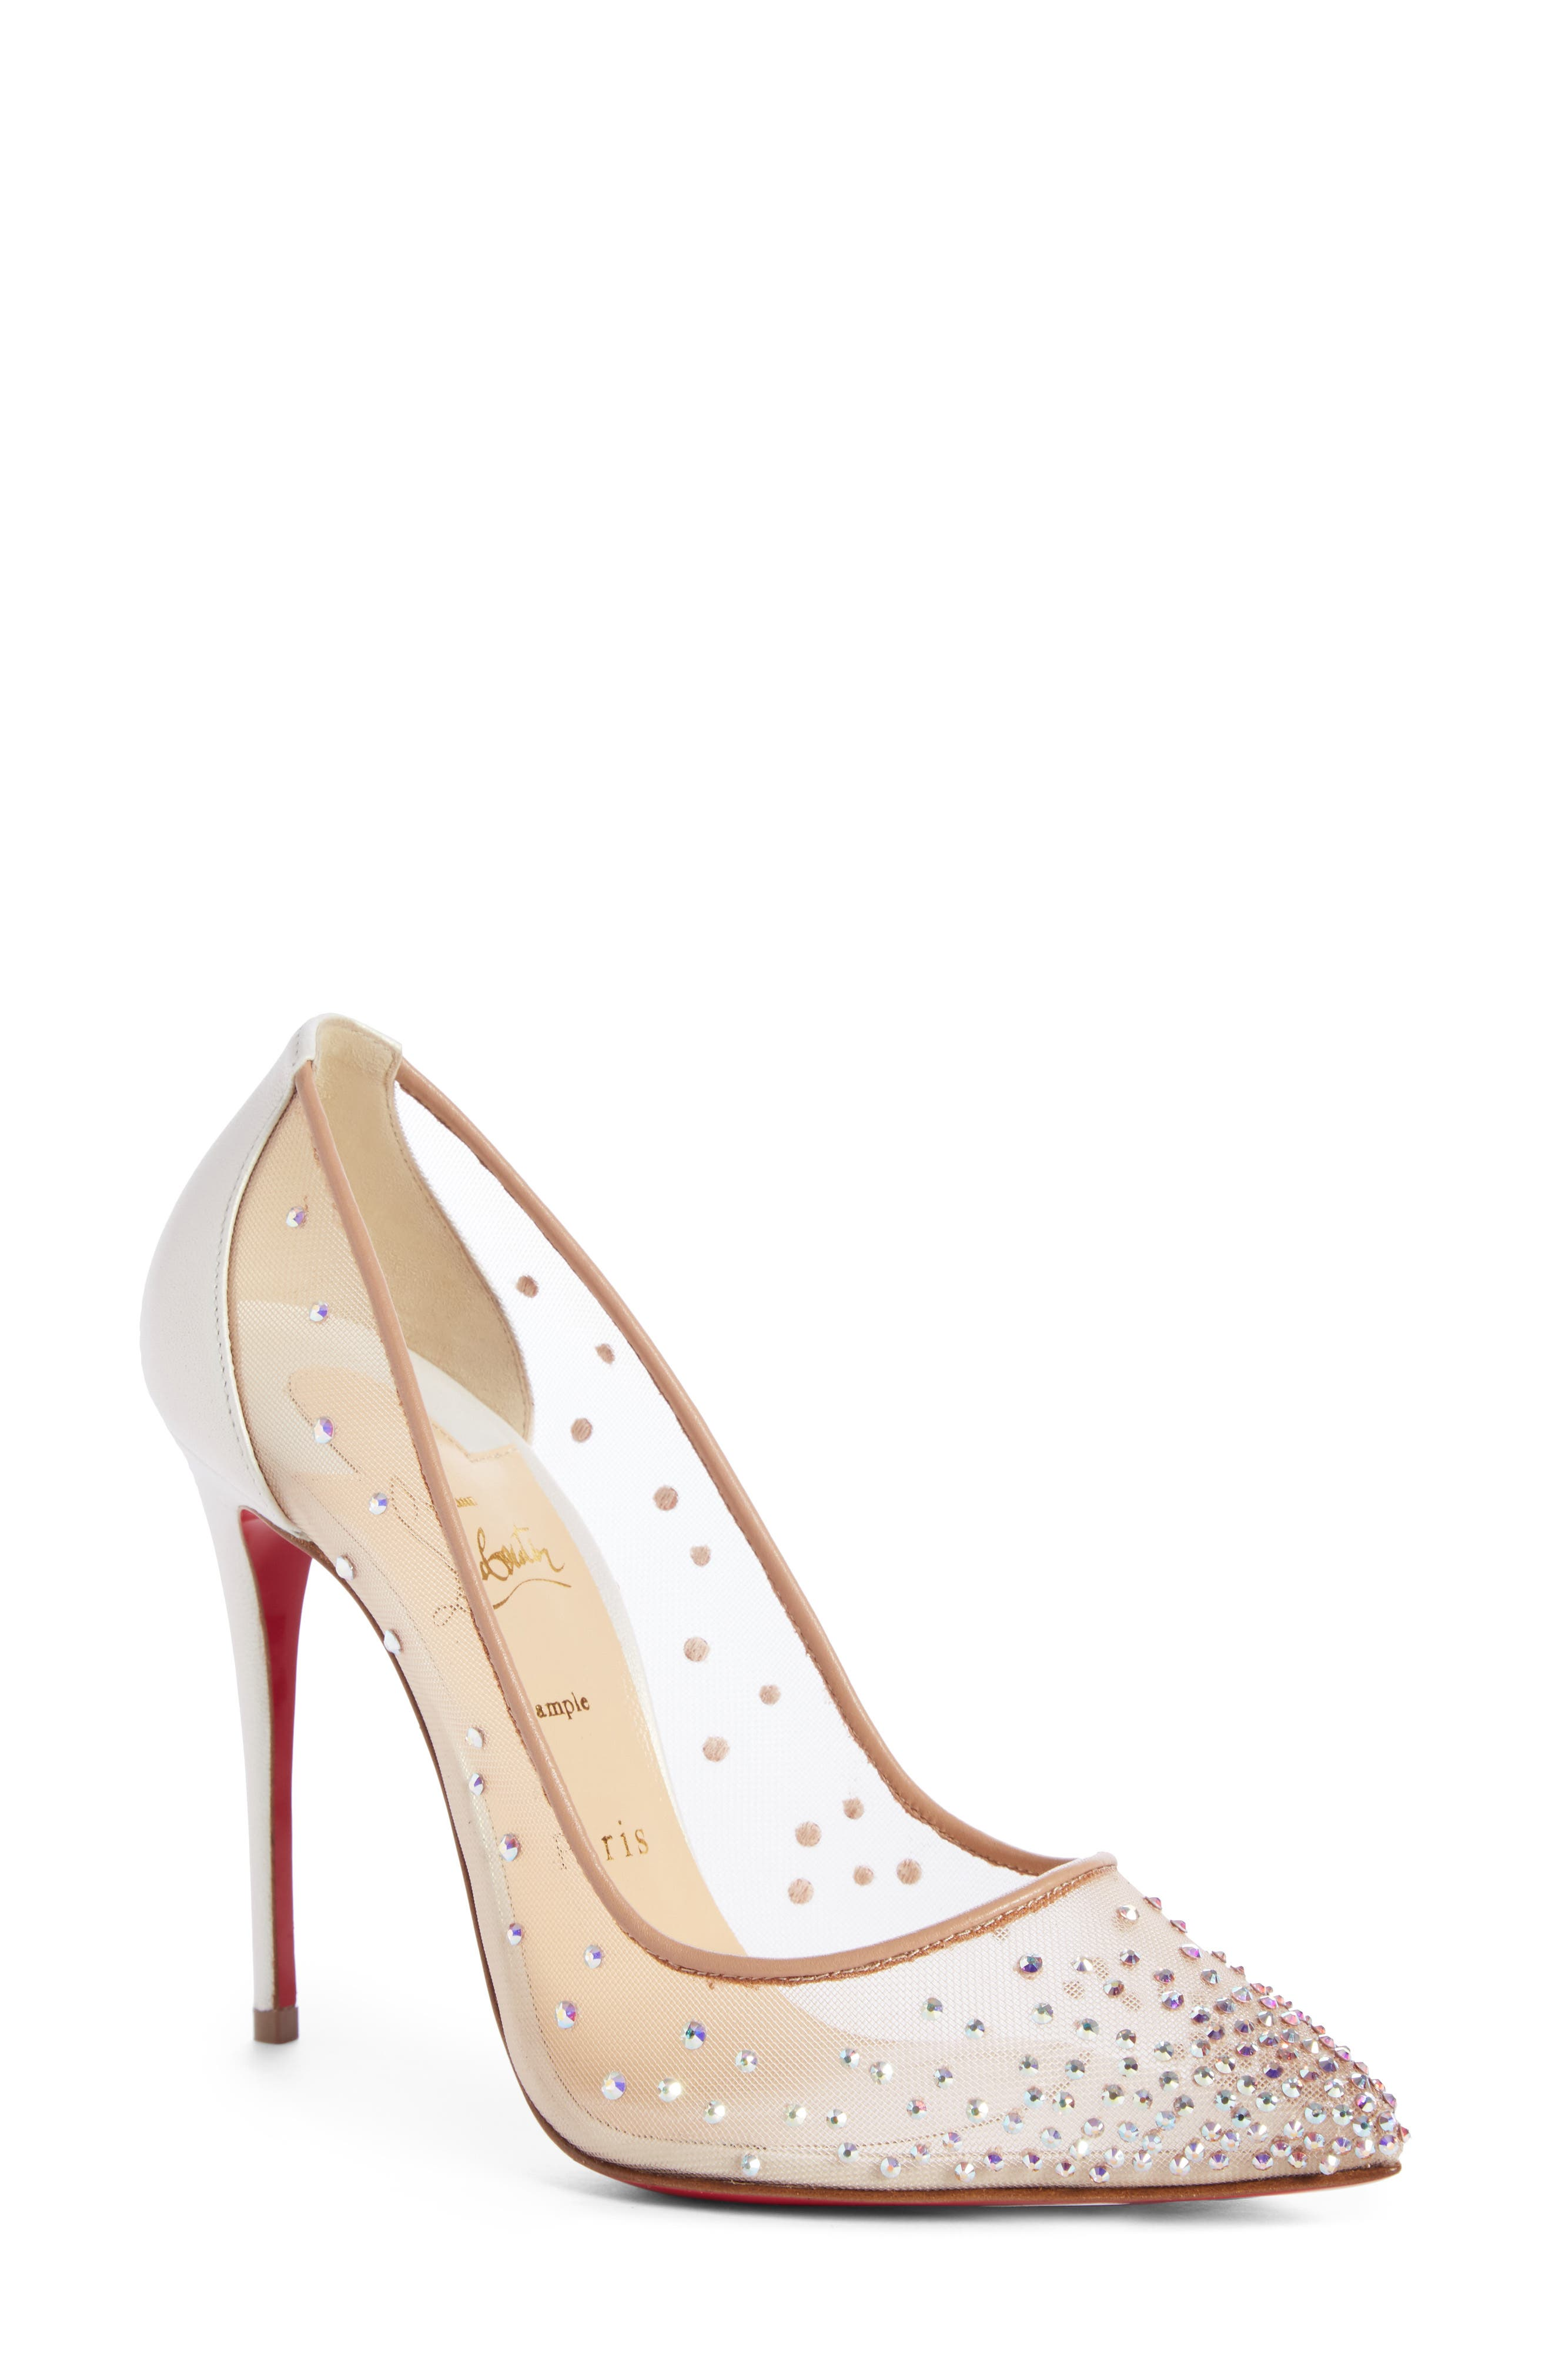 Follies Strass Pointy Toe Pump,                             Main thumbnail 1, color,                             SNOW/ NUDE